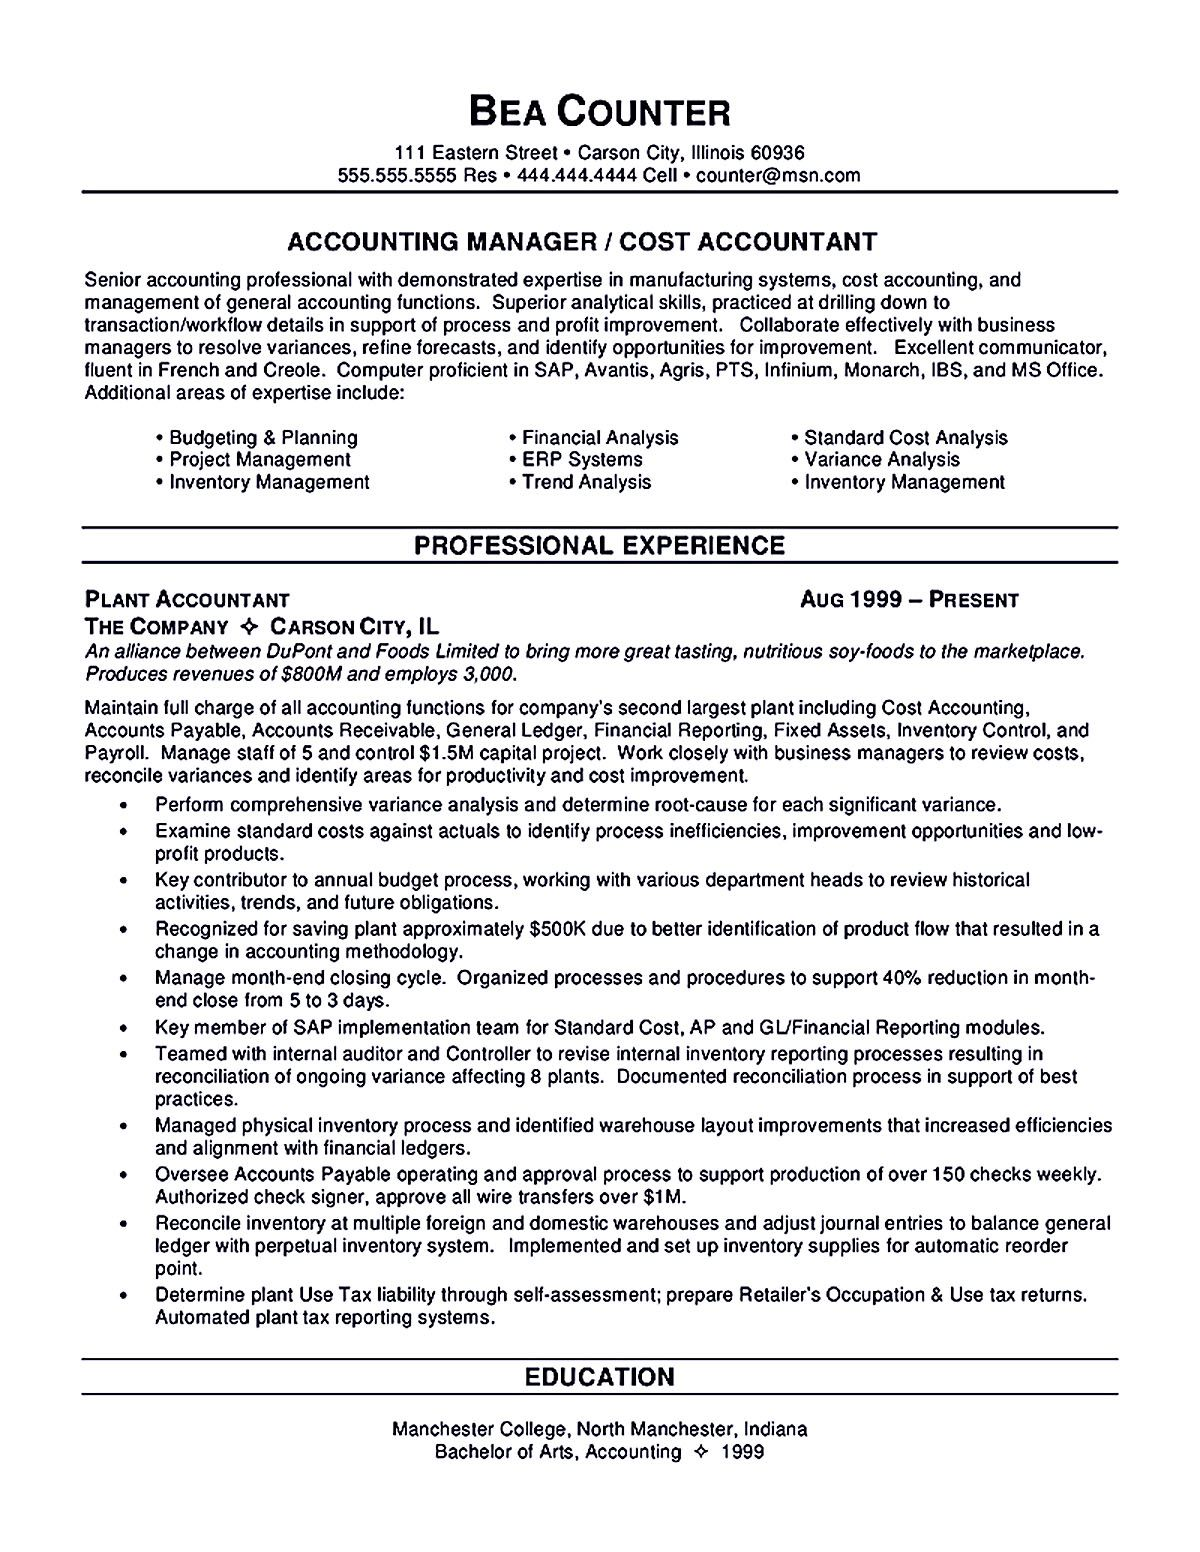 Writing Accountant Resume Sample Is Not That Complicated As How The Work Of Accountant Will Be Yo Accountant Resume Resume Objective Statement Resume Examples